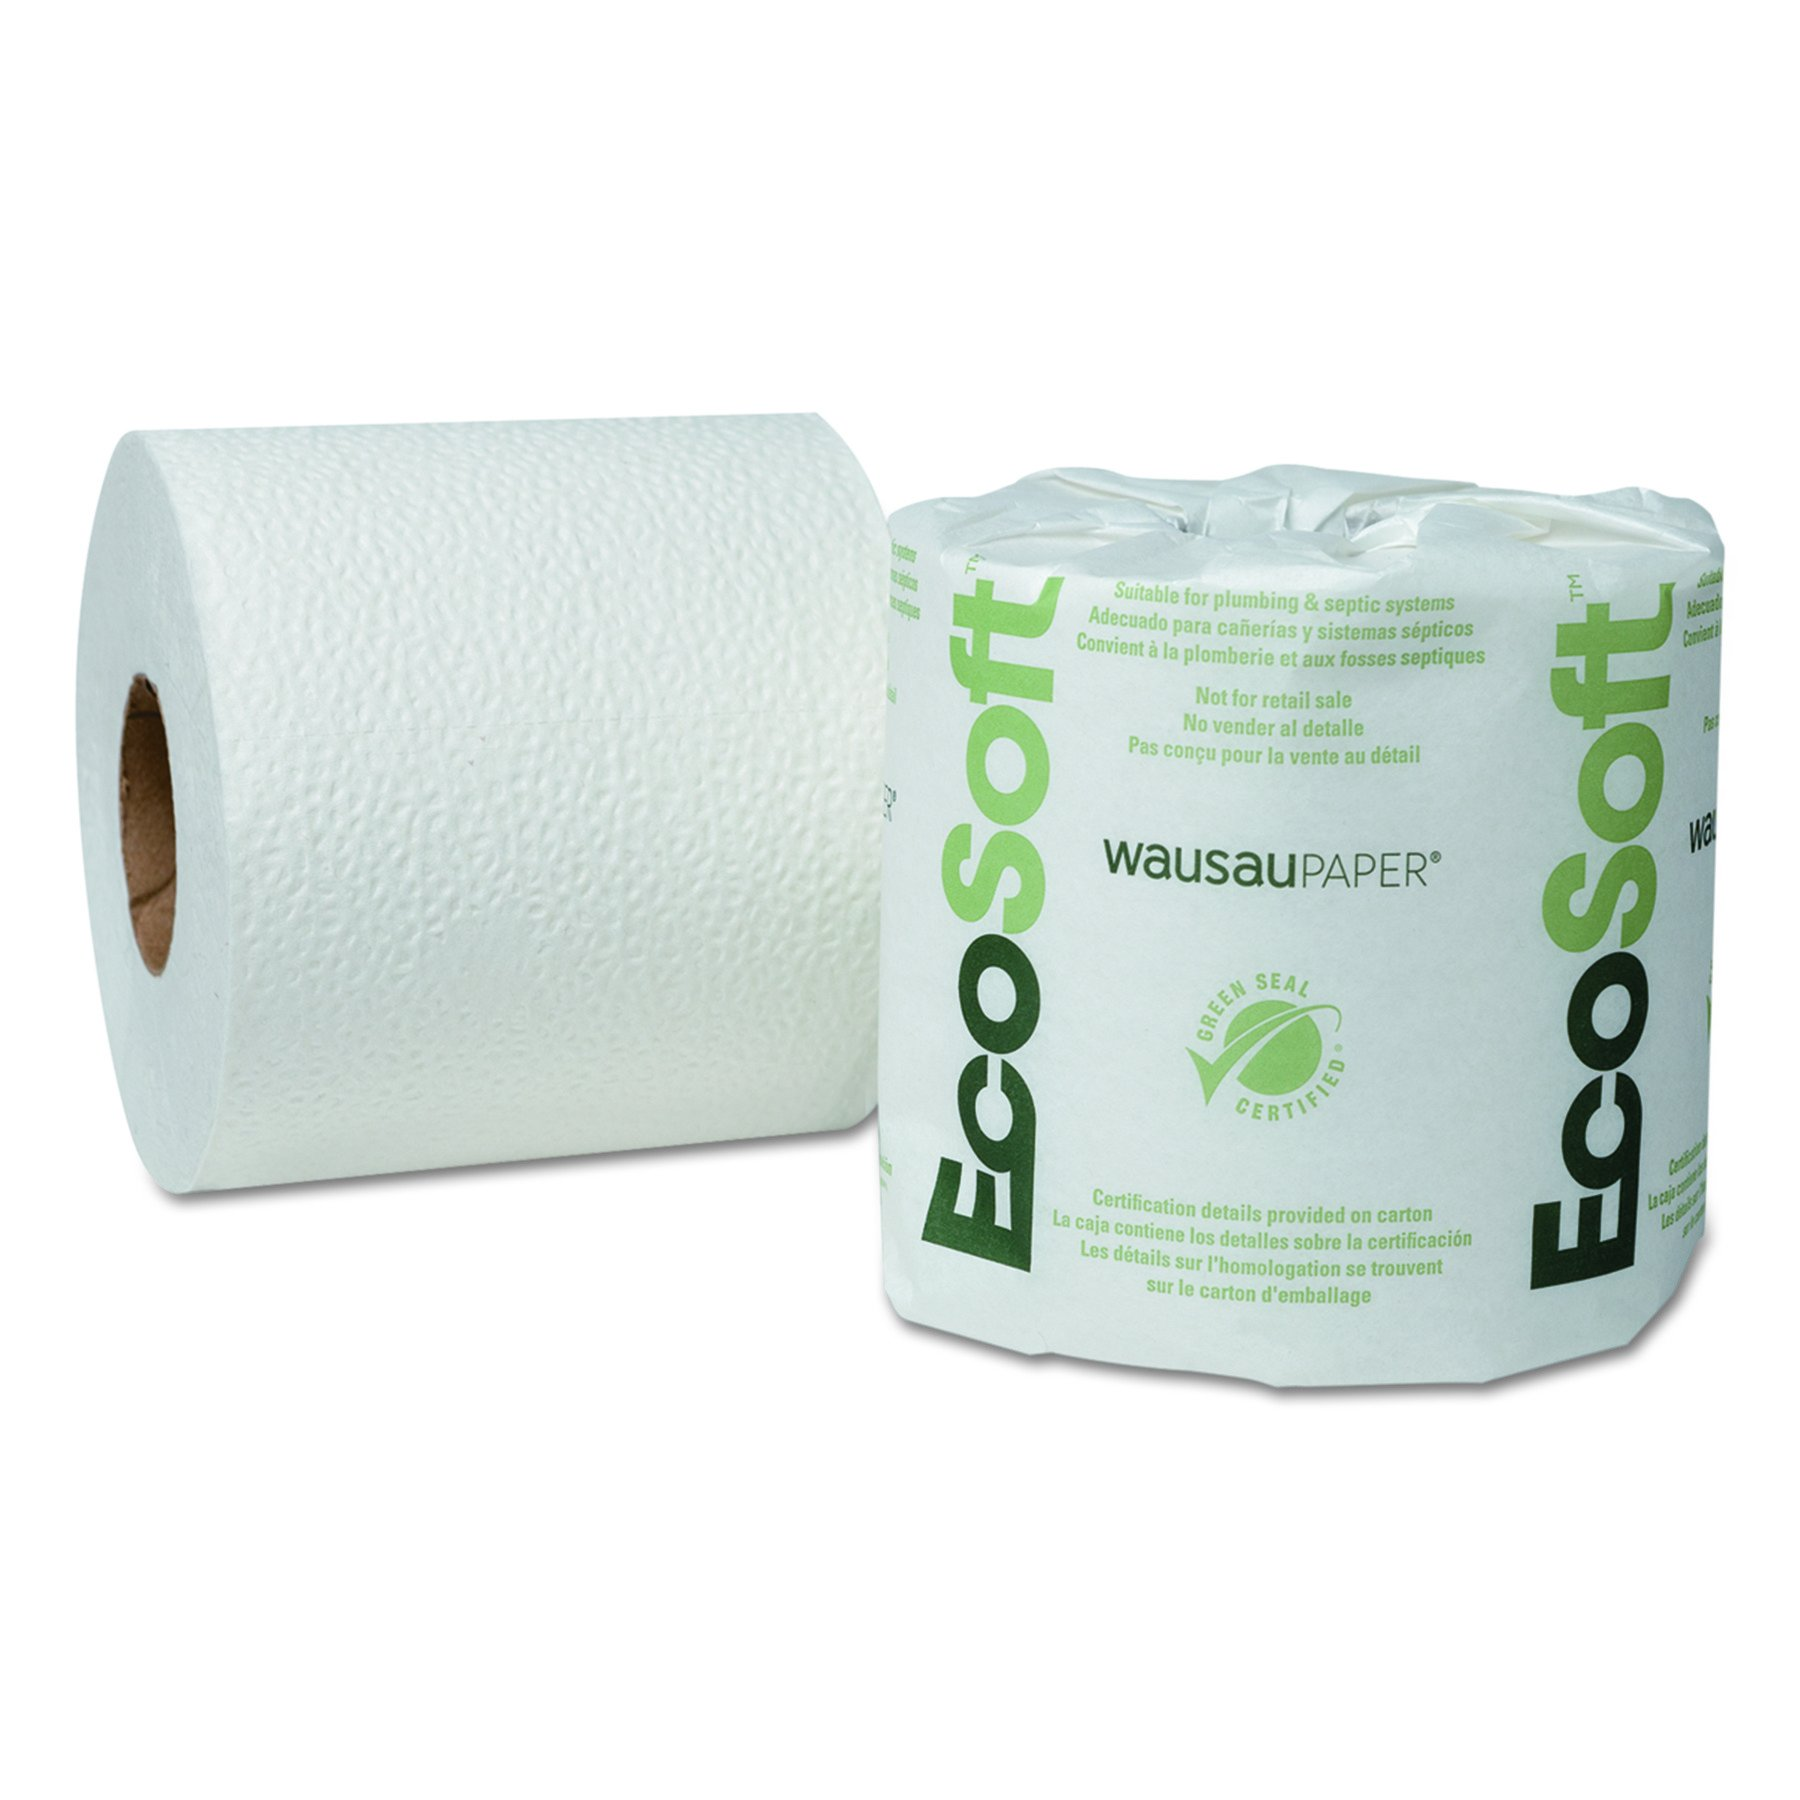 Wausau Paper 54000 EcoSoft Universal Bathroom Tissue, 2-Ply, 500 Sheets per Roll (Case of 96 Rolls)